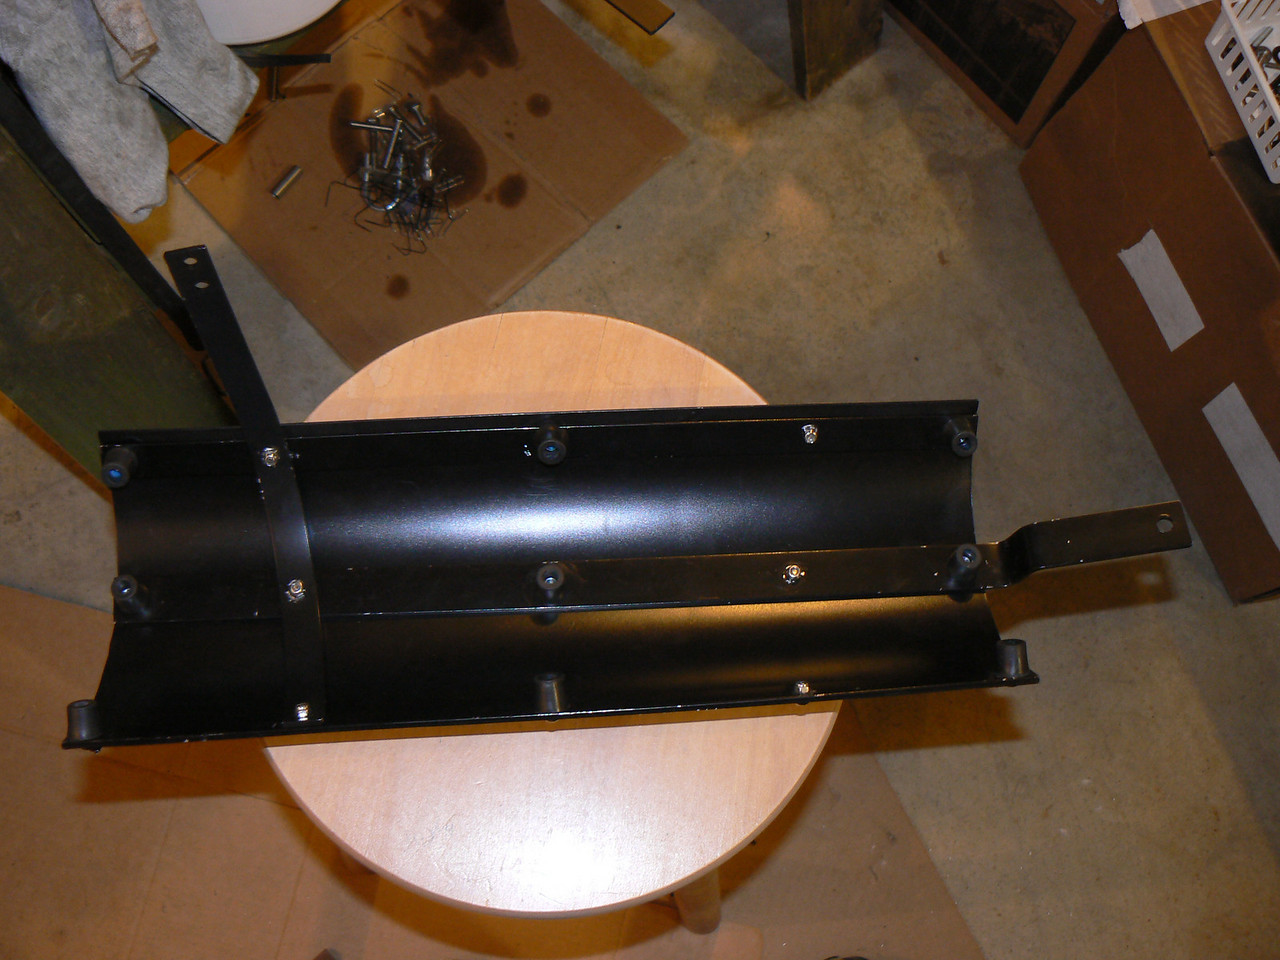 My own built heat shield and tool tube mounting:<br /> Back side of heat shield. Flat alum for strength and support, rubber stoppers to rest against muffler-test these already and no meltage (or at least very little)